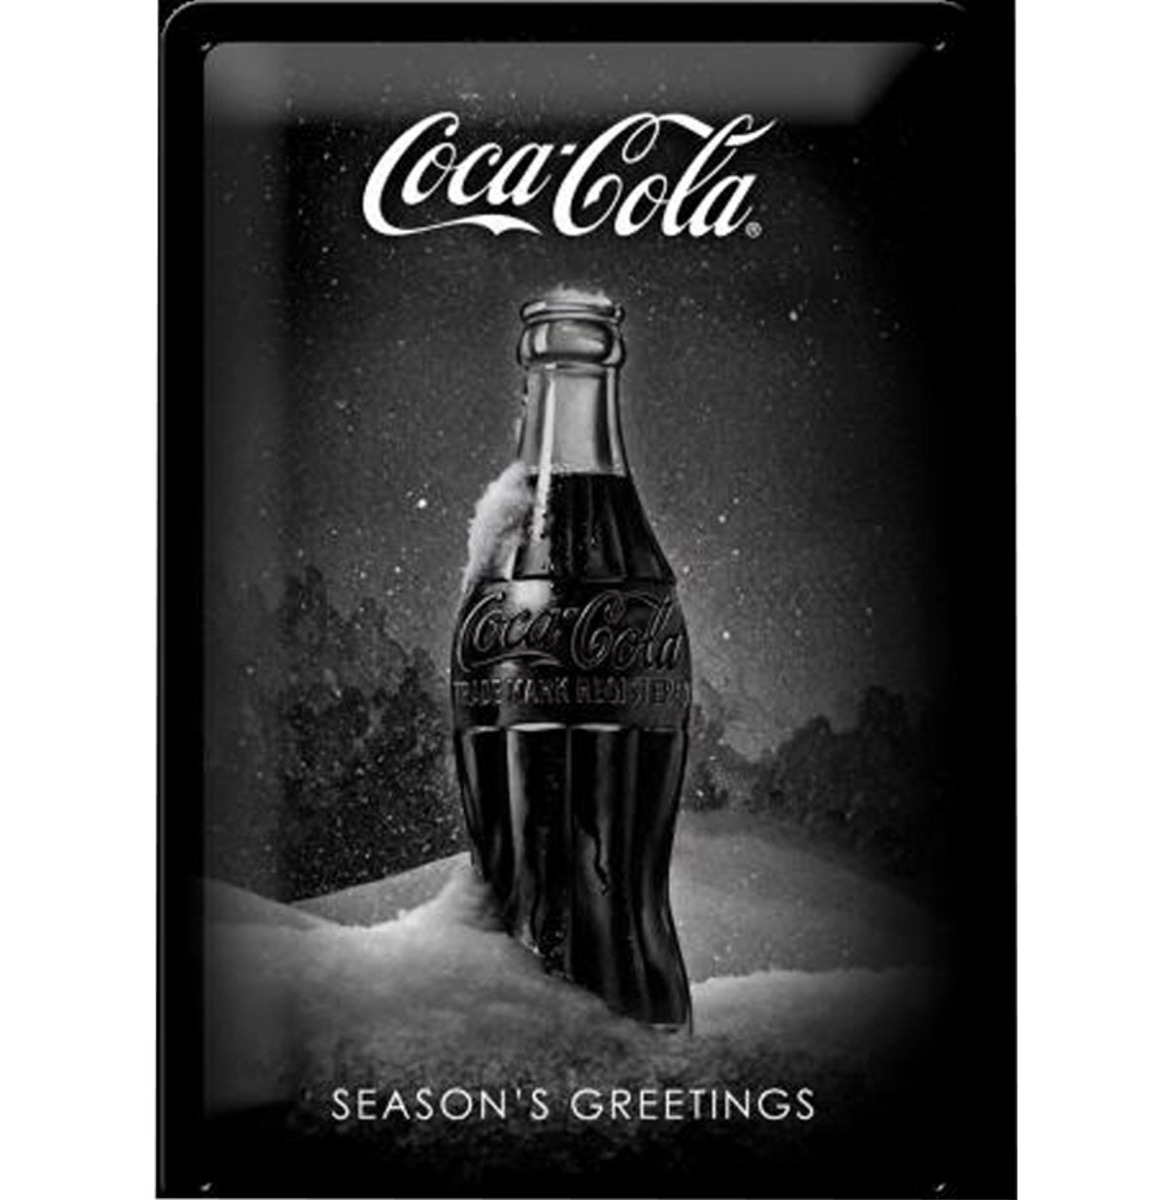 Coca-Cola Season's Greetings Metalen Bord - 20 x 30 cm